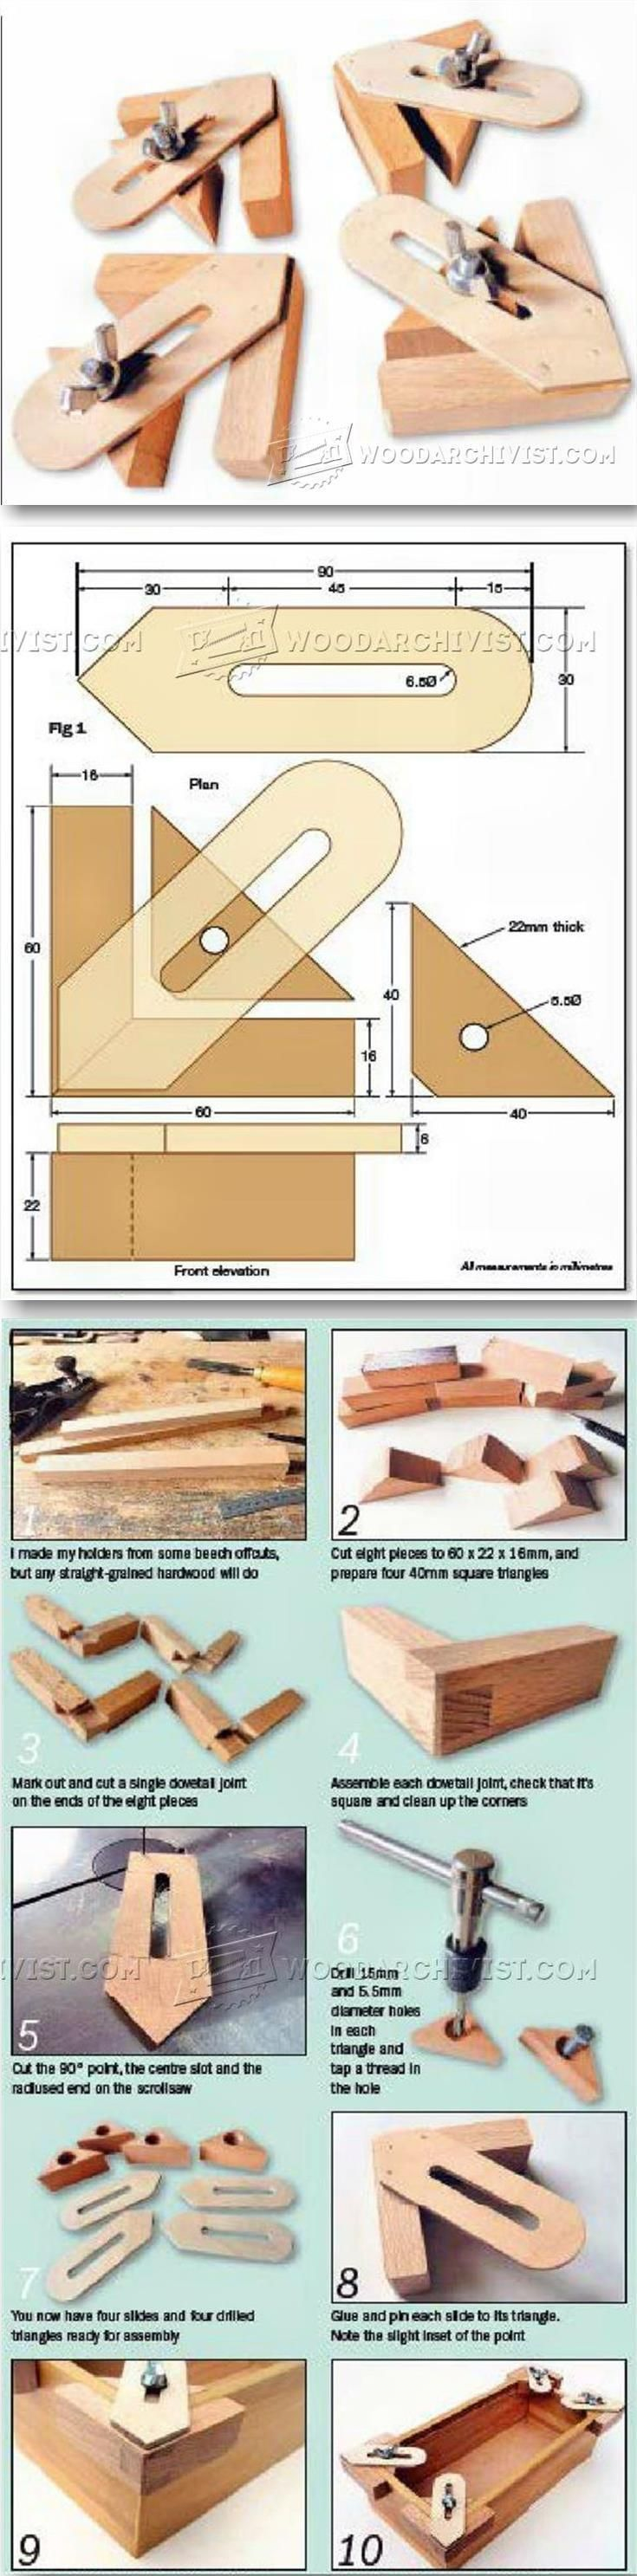 Tools For Diy Projects Best 25 Diy Tools Ideas Only On Pinterest Woodworking Tools